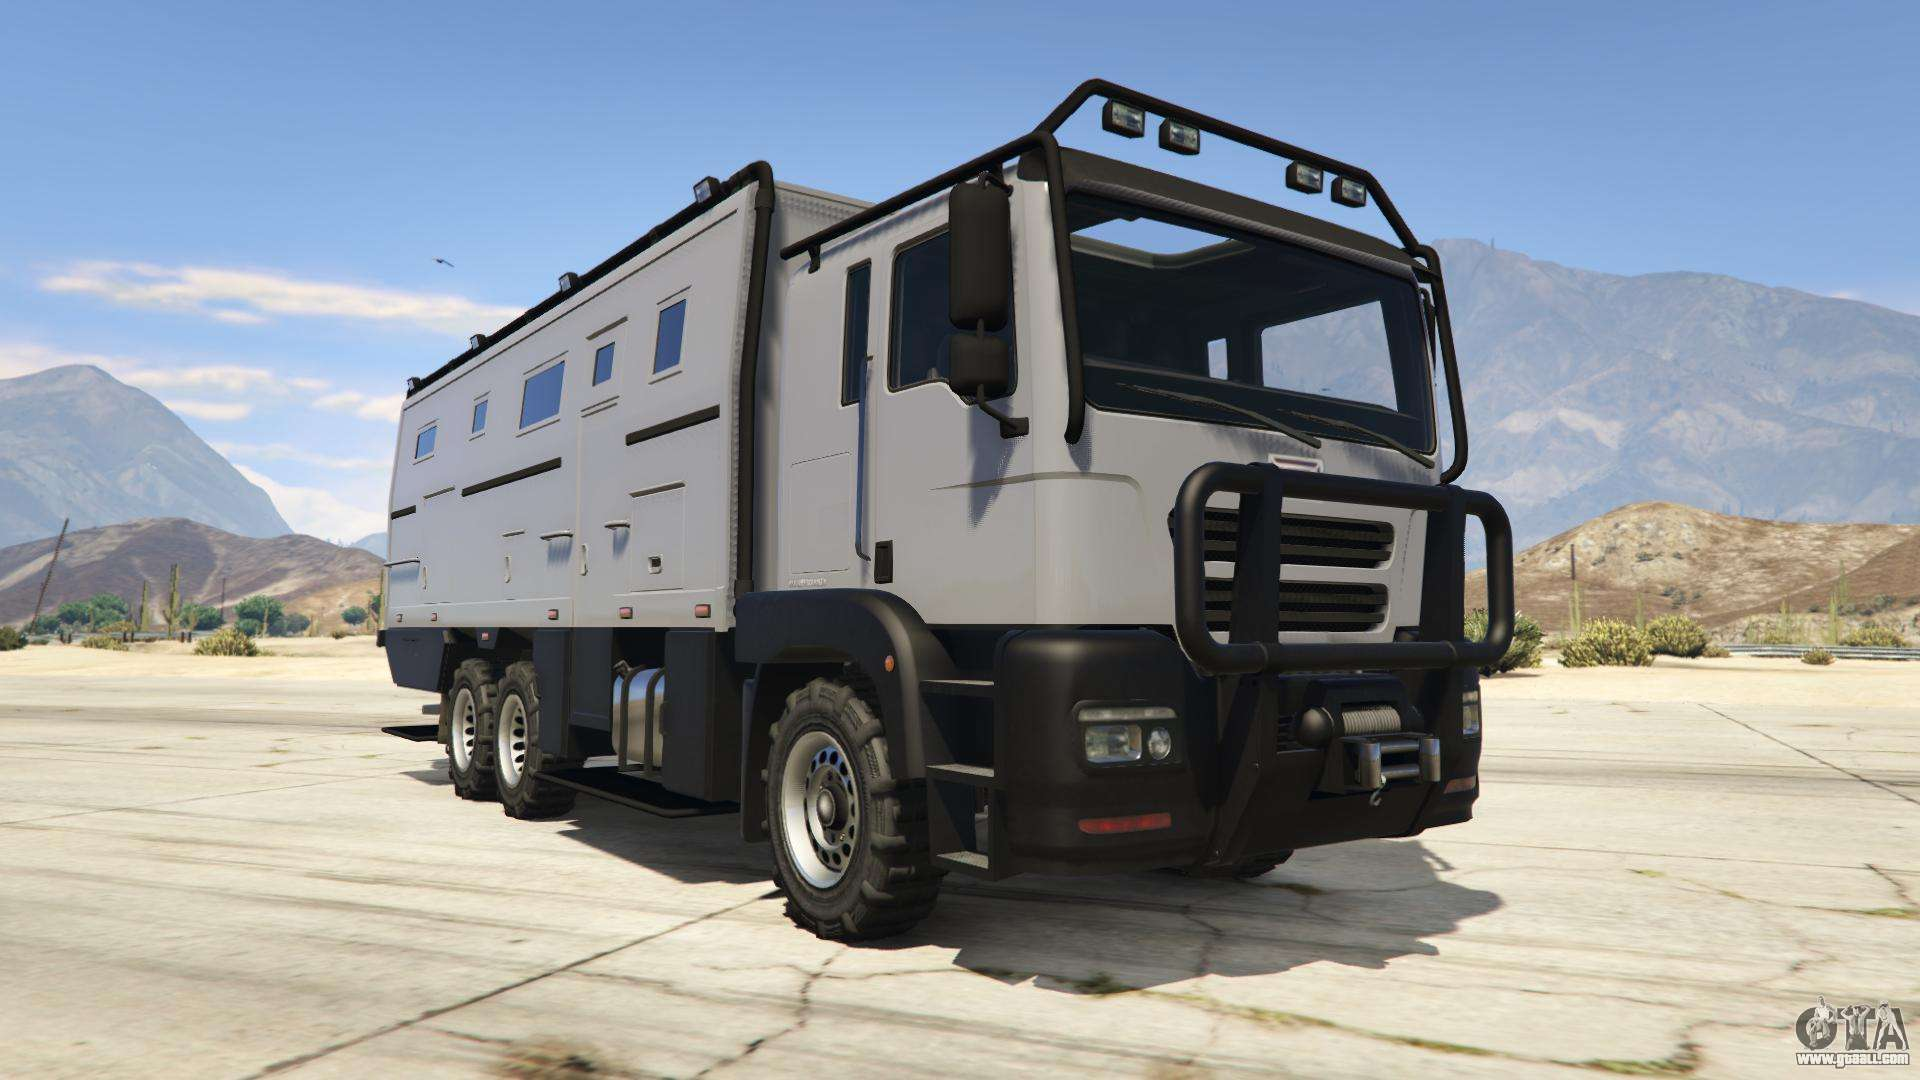 HVY Brickade from GTA 5 - front view